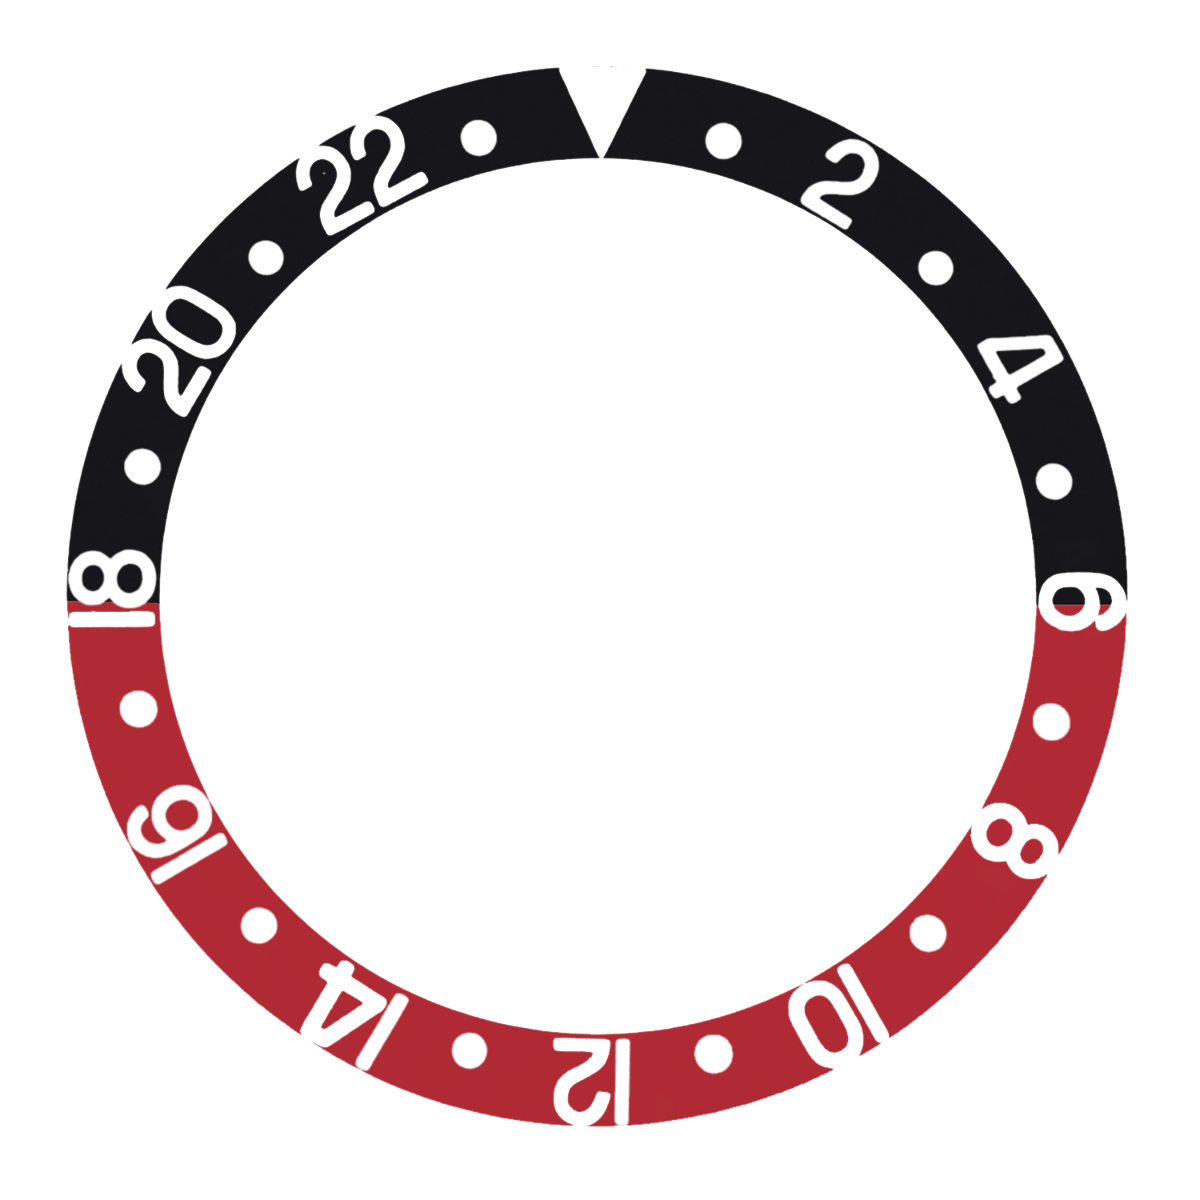 REPLACEMENT BEZEL INSERT BLACK/RED FOR WATCH 37.80MM X 30.20MM